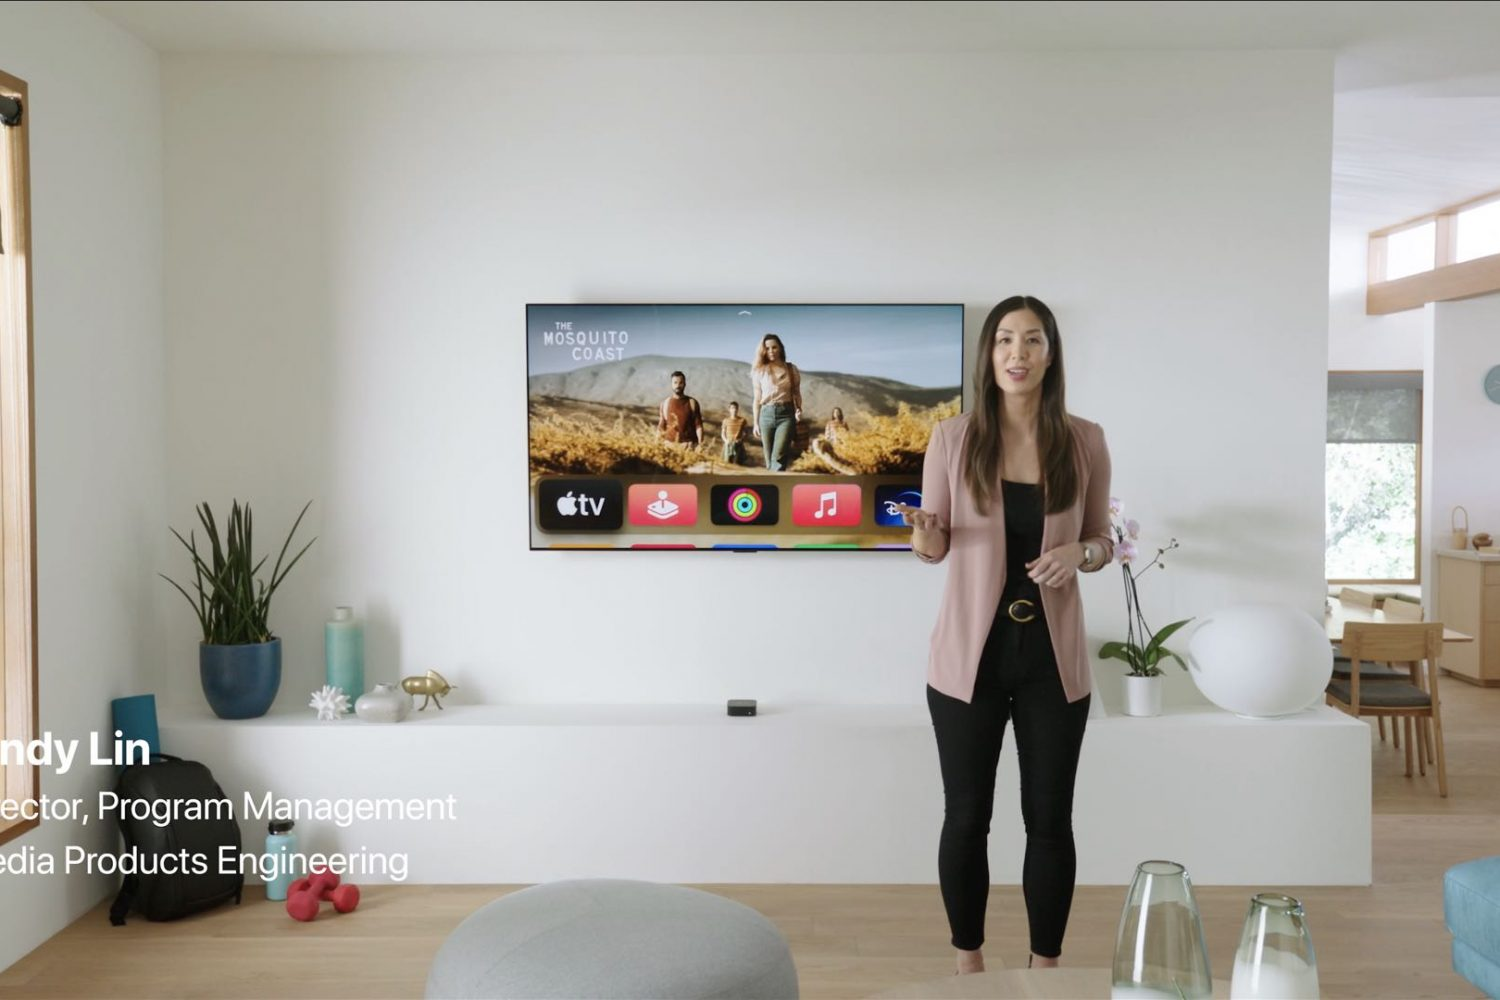 A still image from the April 2021 Apple event video in which executive Cindy Lin discusses the Apple TV 4K while standing in front of a TV in a living room set